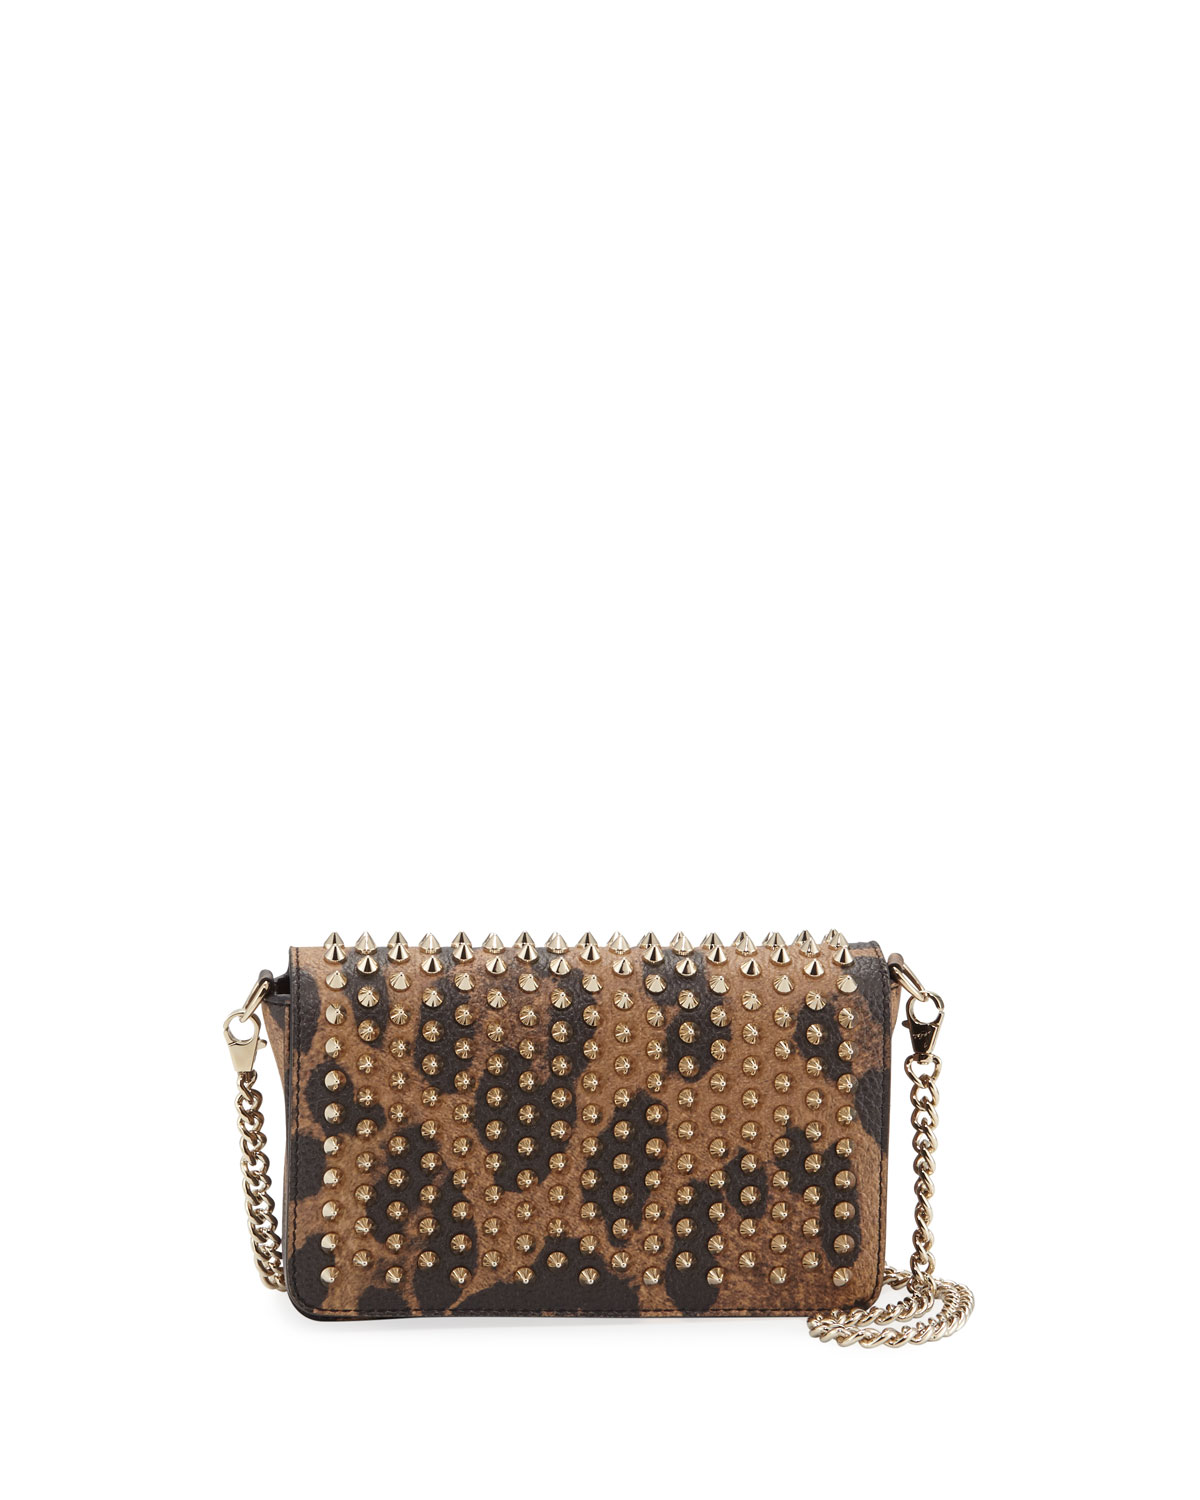 dd2c1479f99 Zoompouch Calf Empire Spikes Leopard Clutch Bag in Brown/Gold